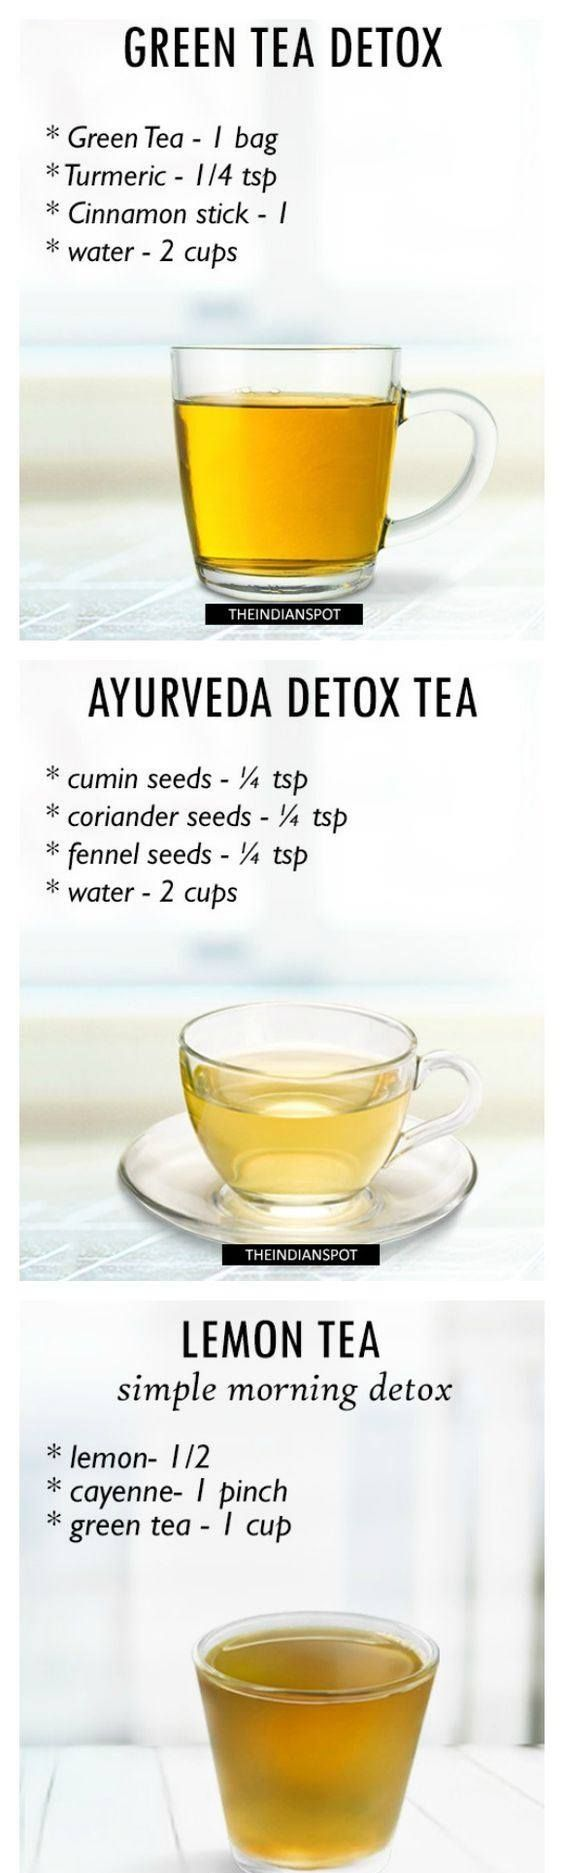 Here's some nice Morning Detox tea recipes for healthy body and glowing skin for you! :)